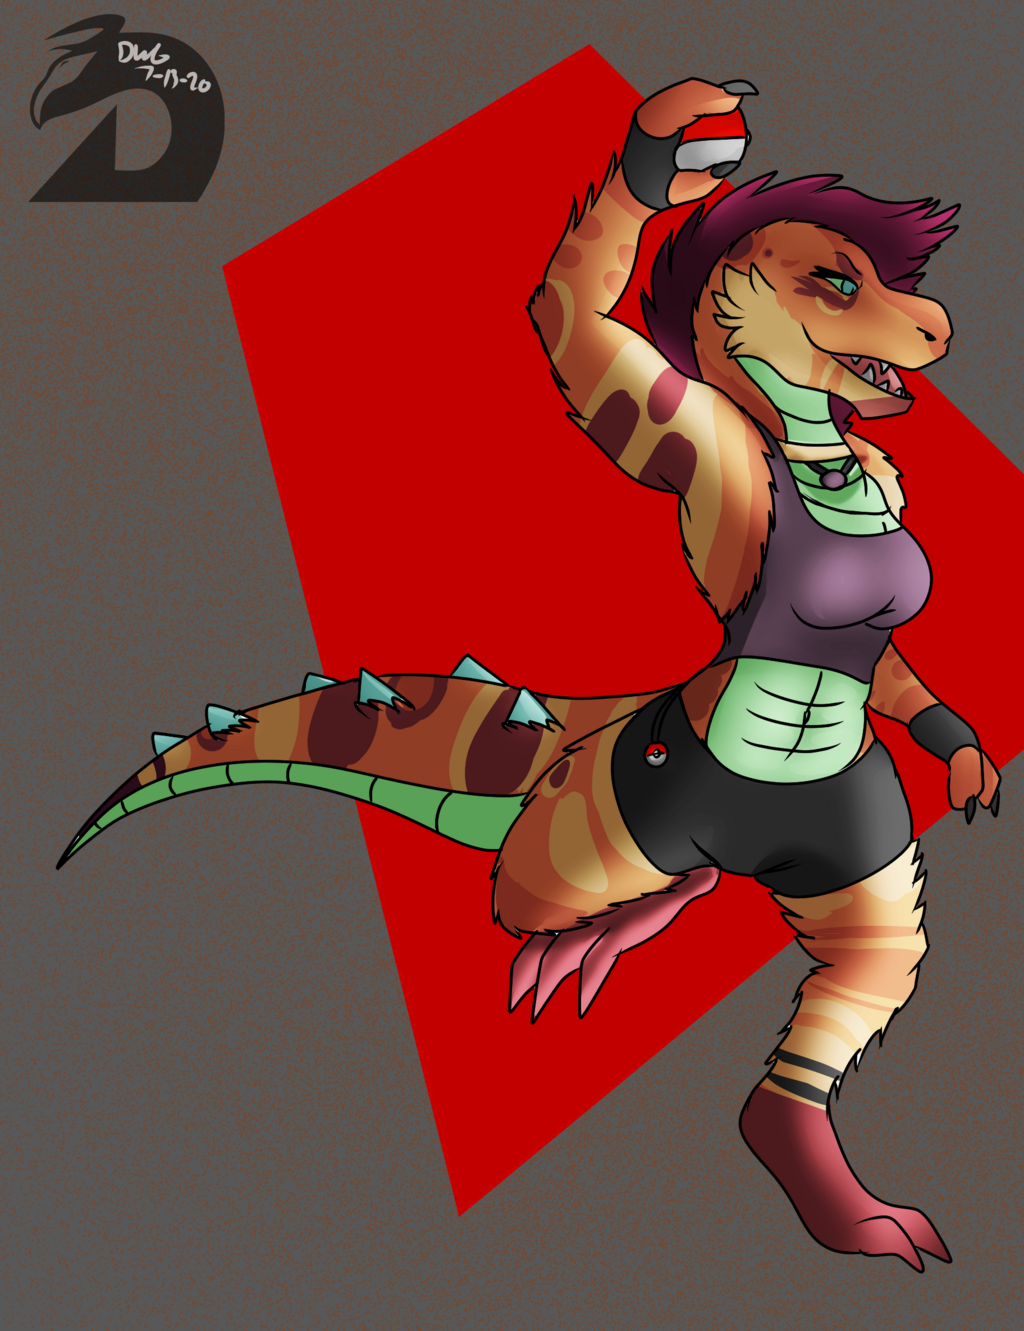 Most recent image: Trainer Zaria Wants to Battle!